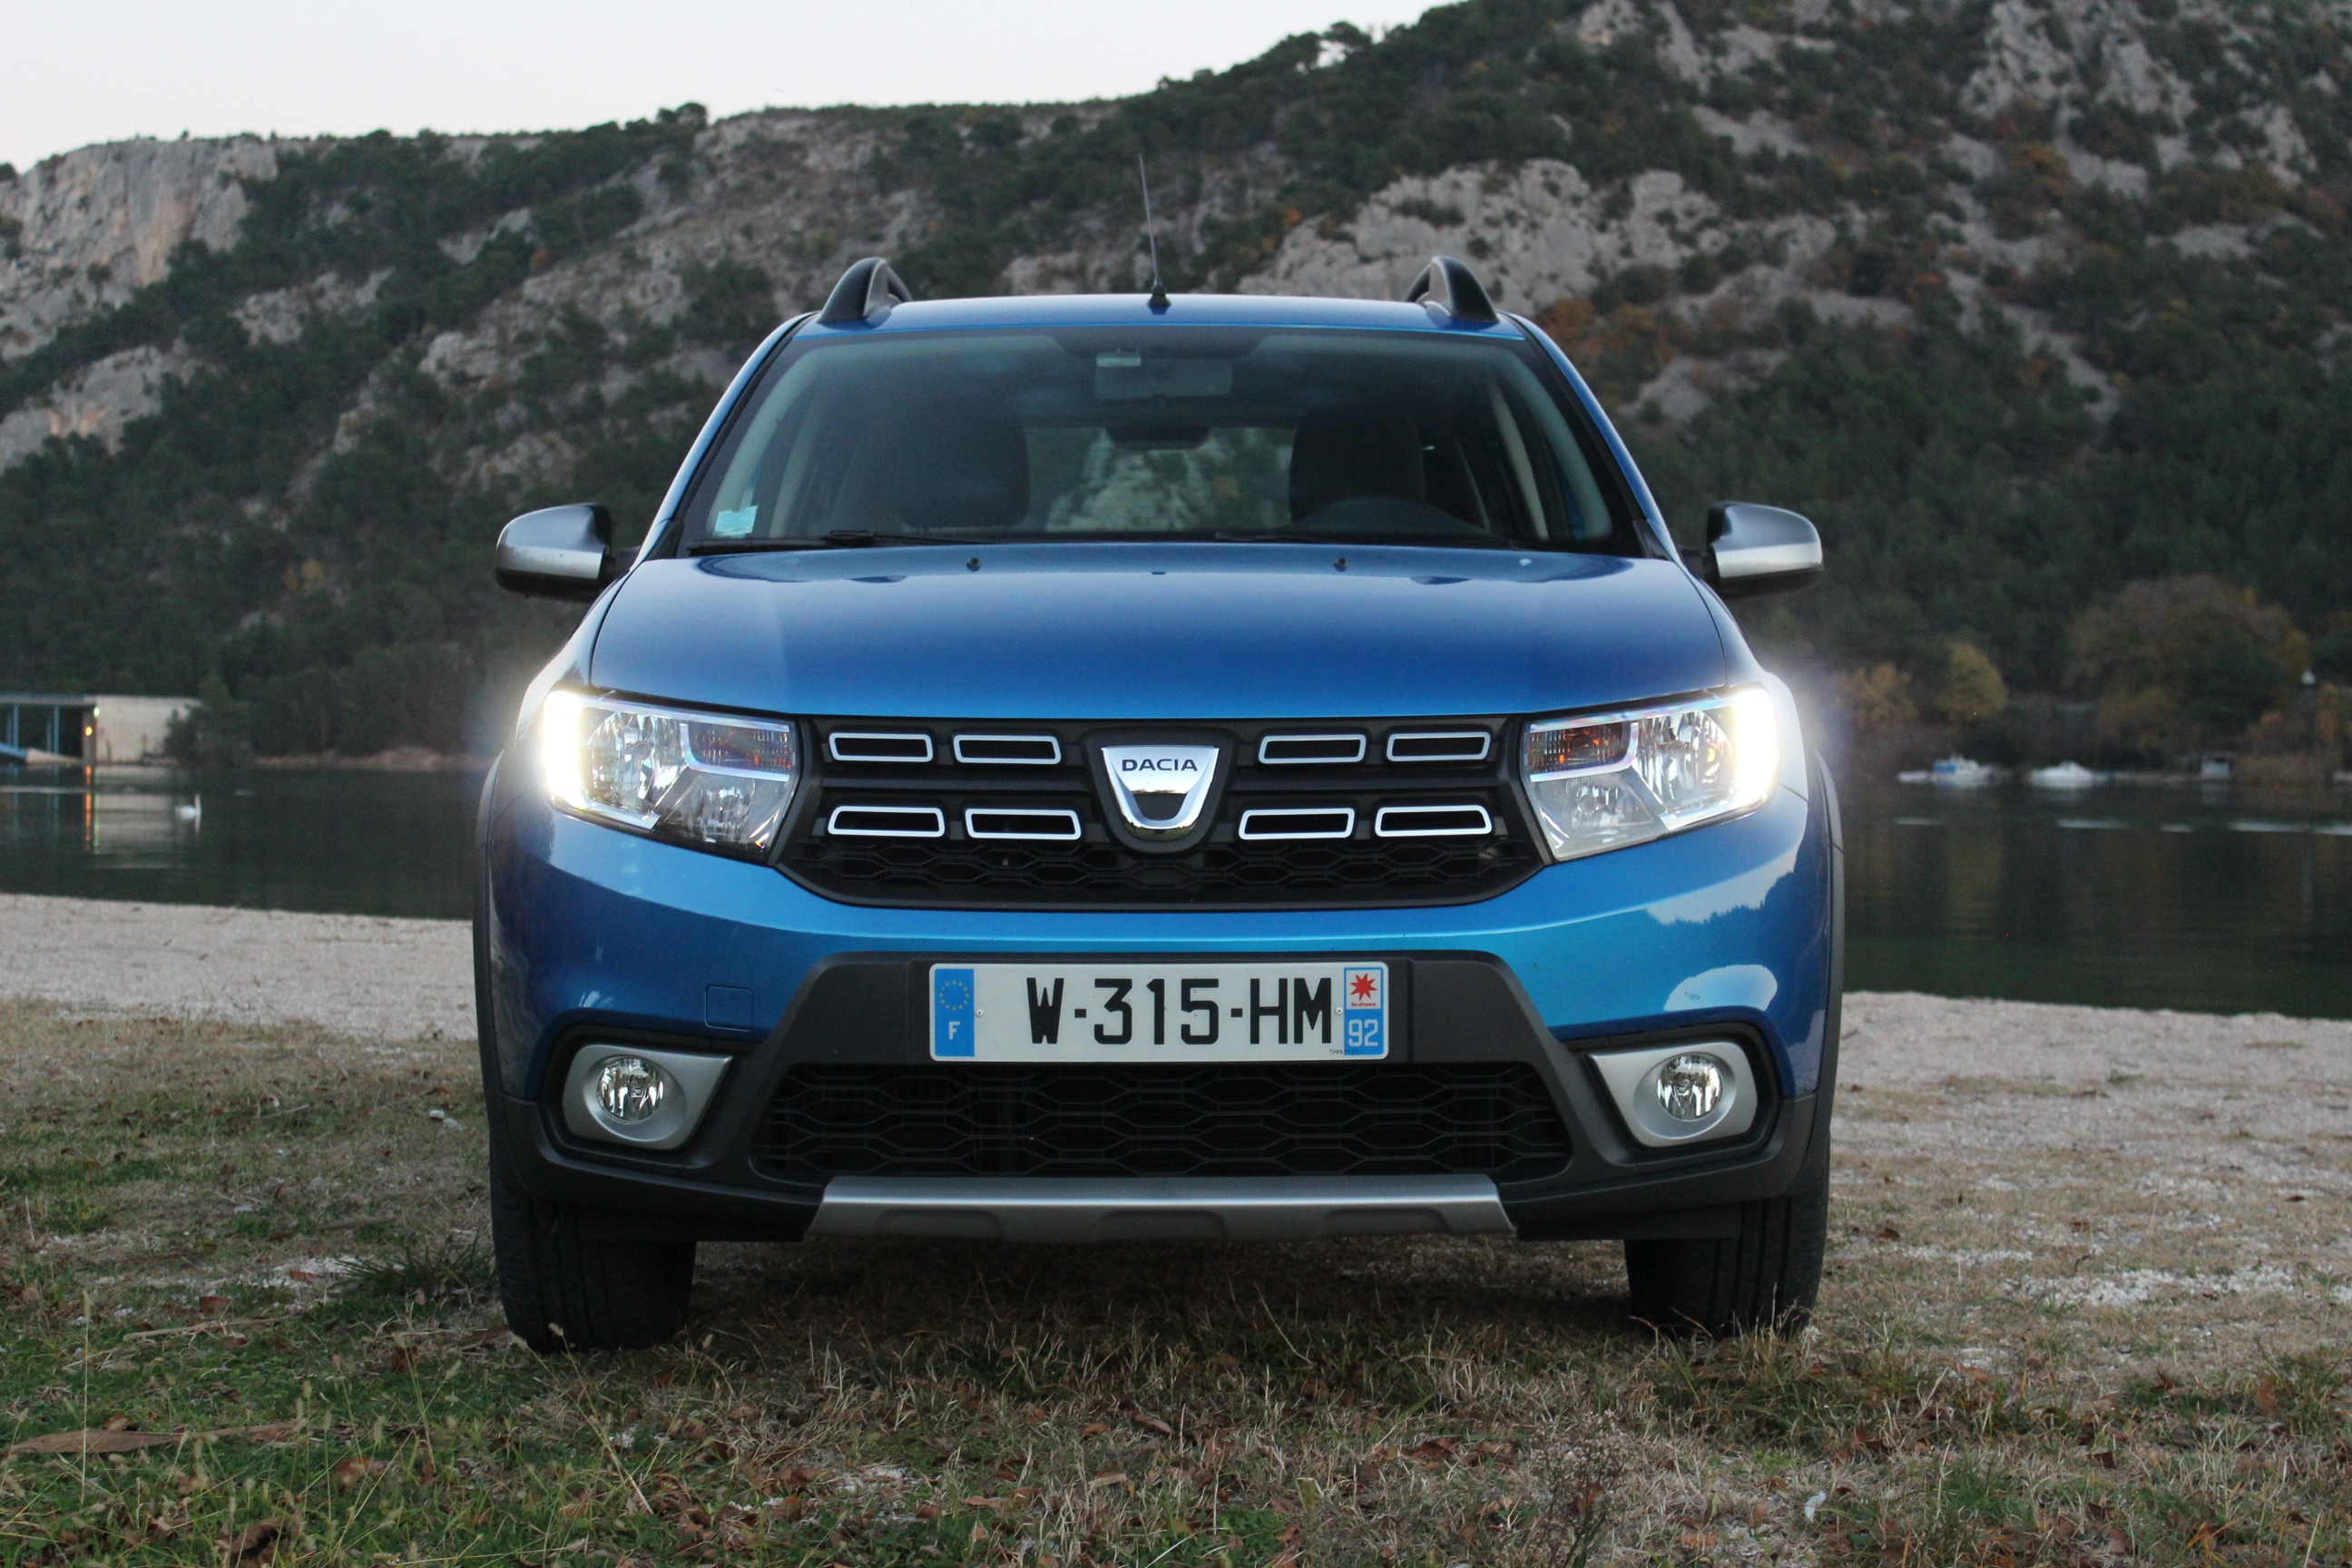 essai dacia sandero stepway tce 90 easy r pas vraiment un progr s. Black Bedroom Furniture Sets. Home Design Ideas